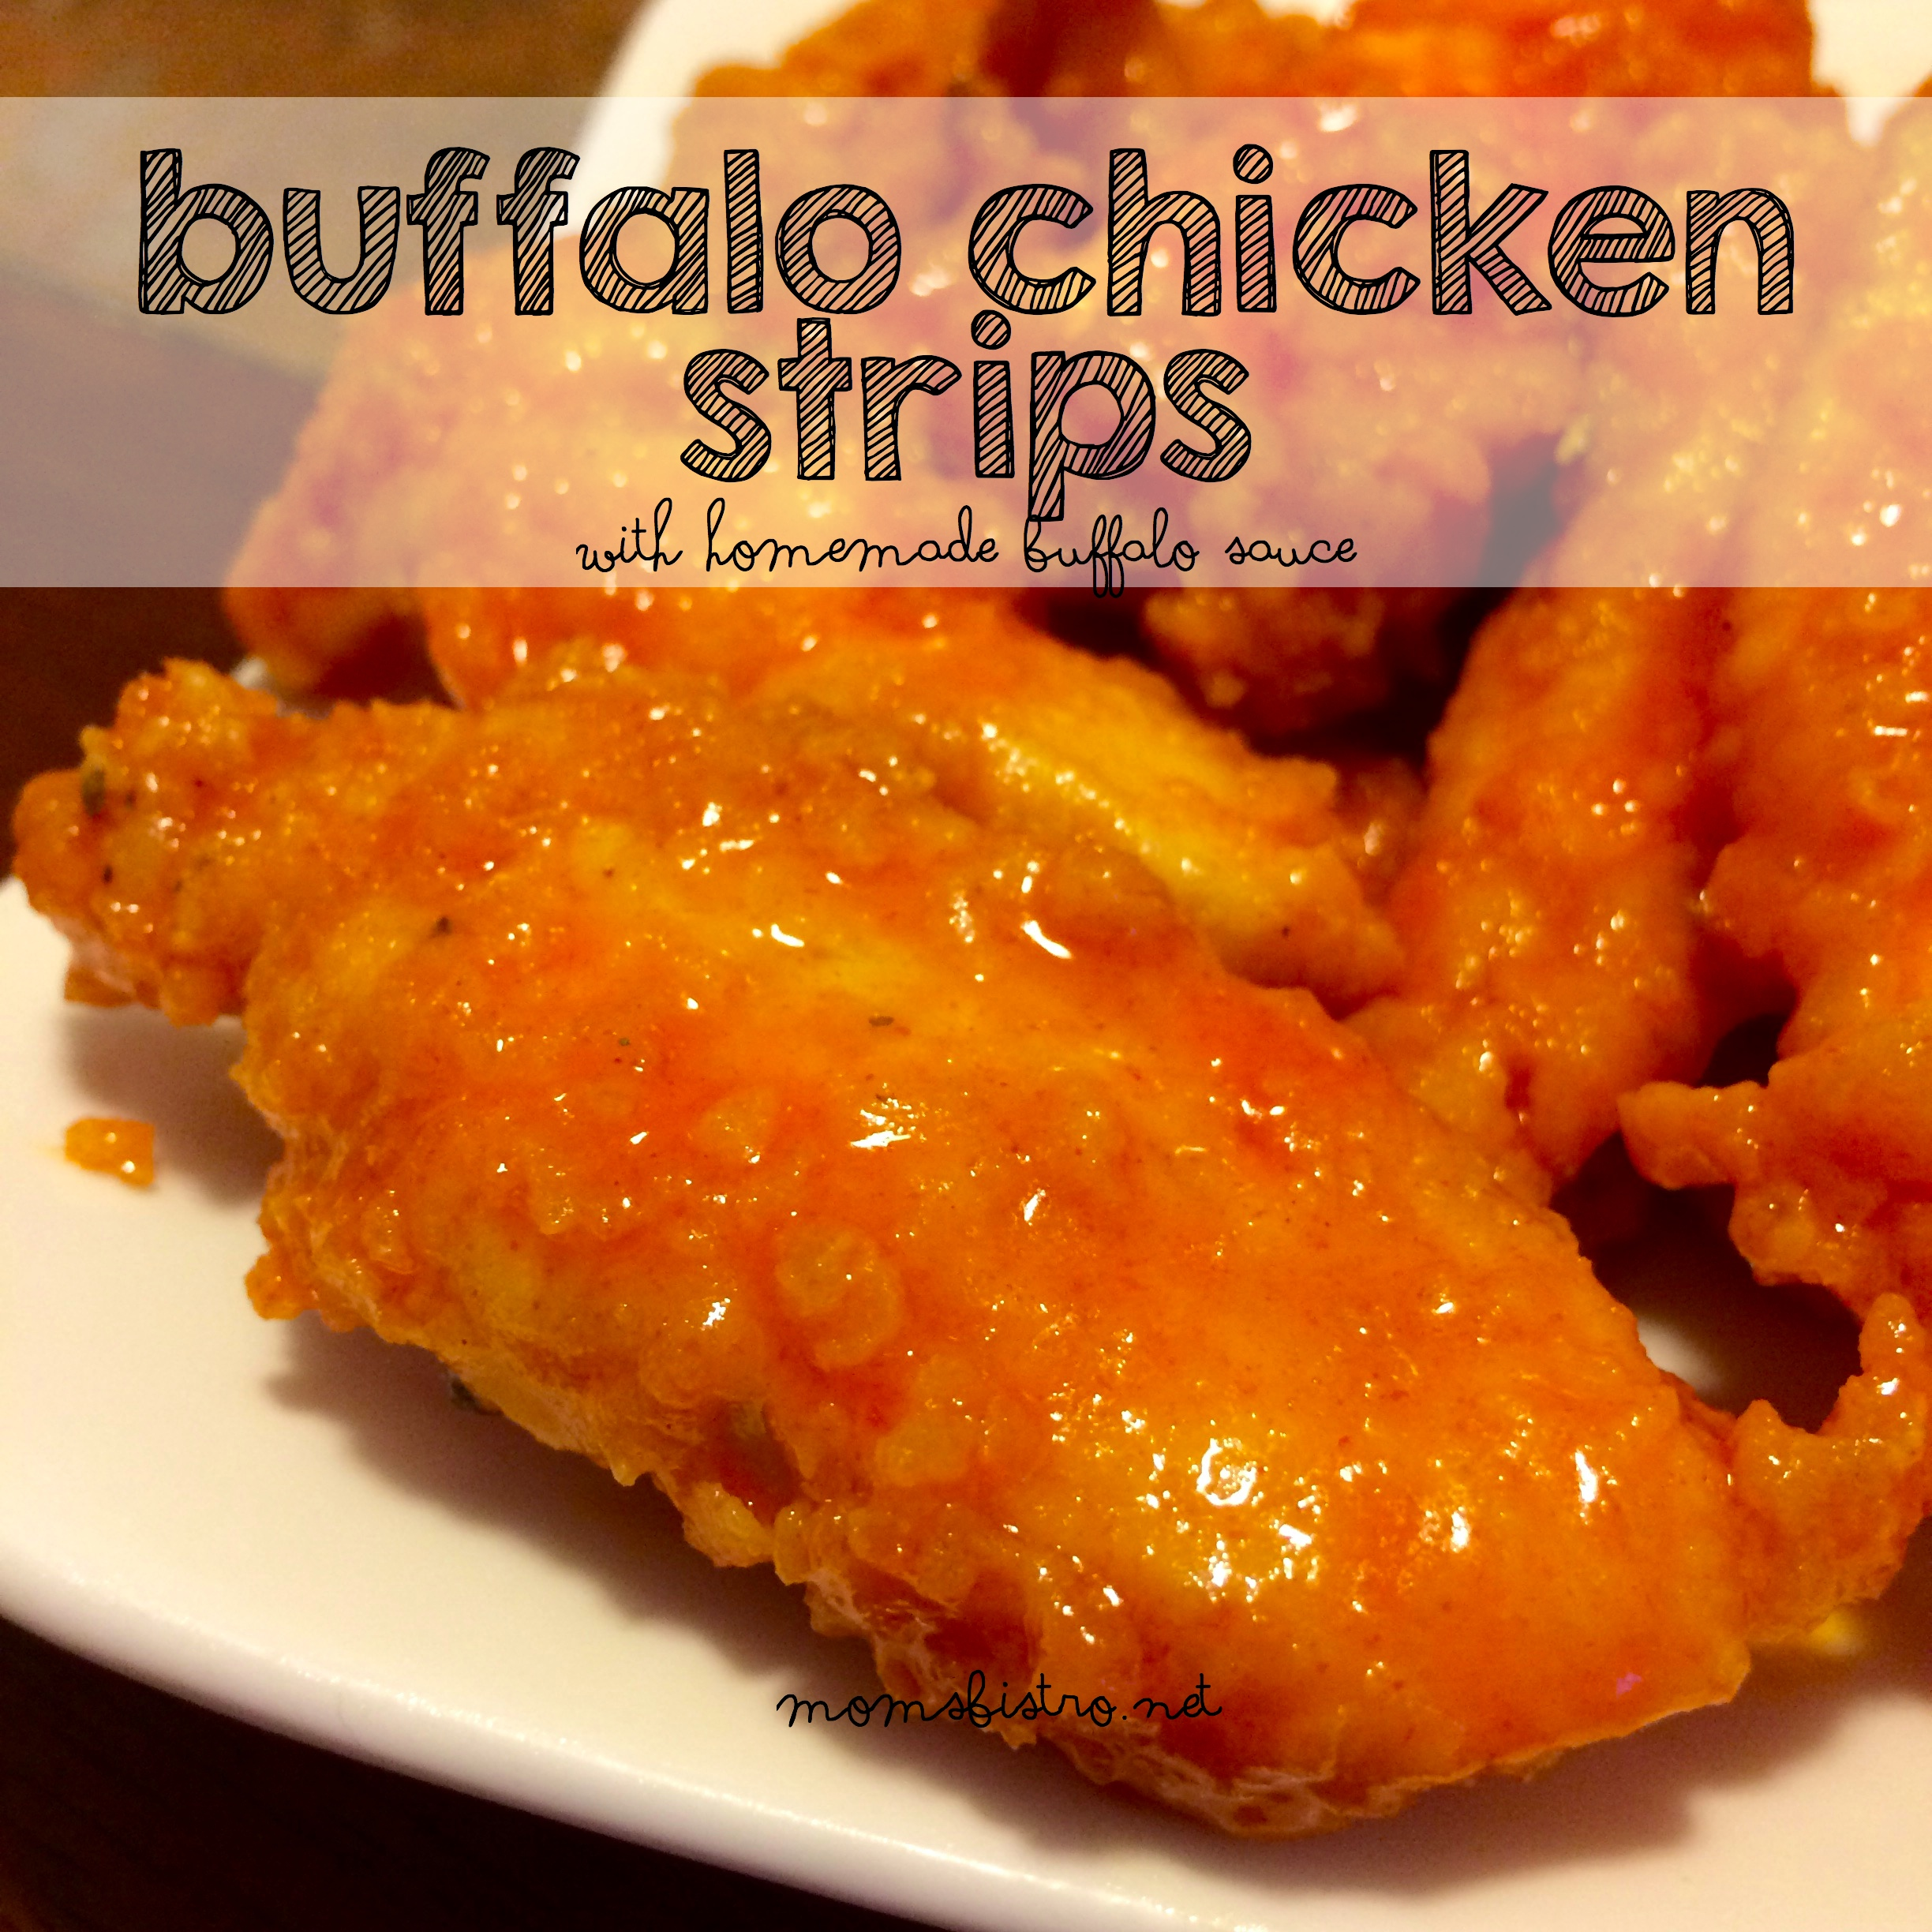 Just In Time For Football Season – Buffalo Chicken Strips with Homemade Buffalo Sauce